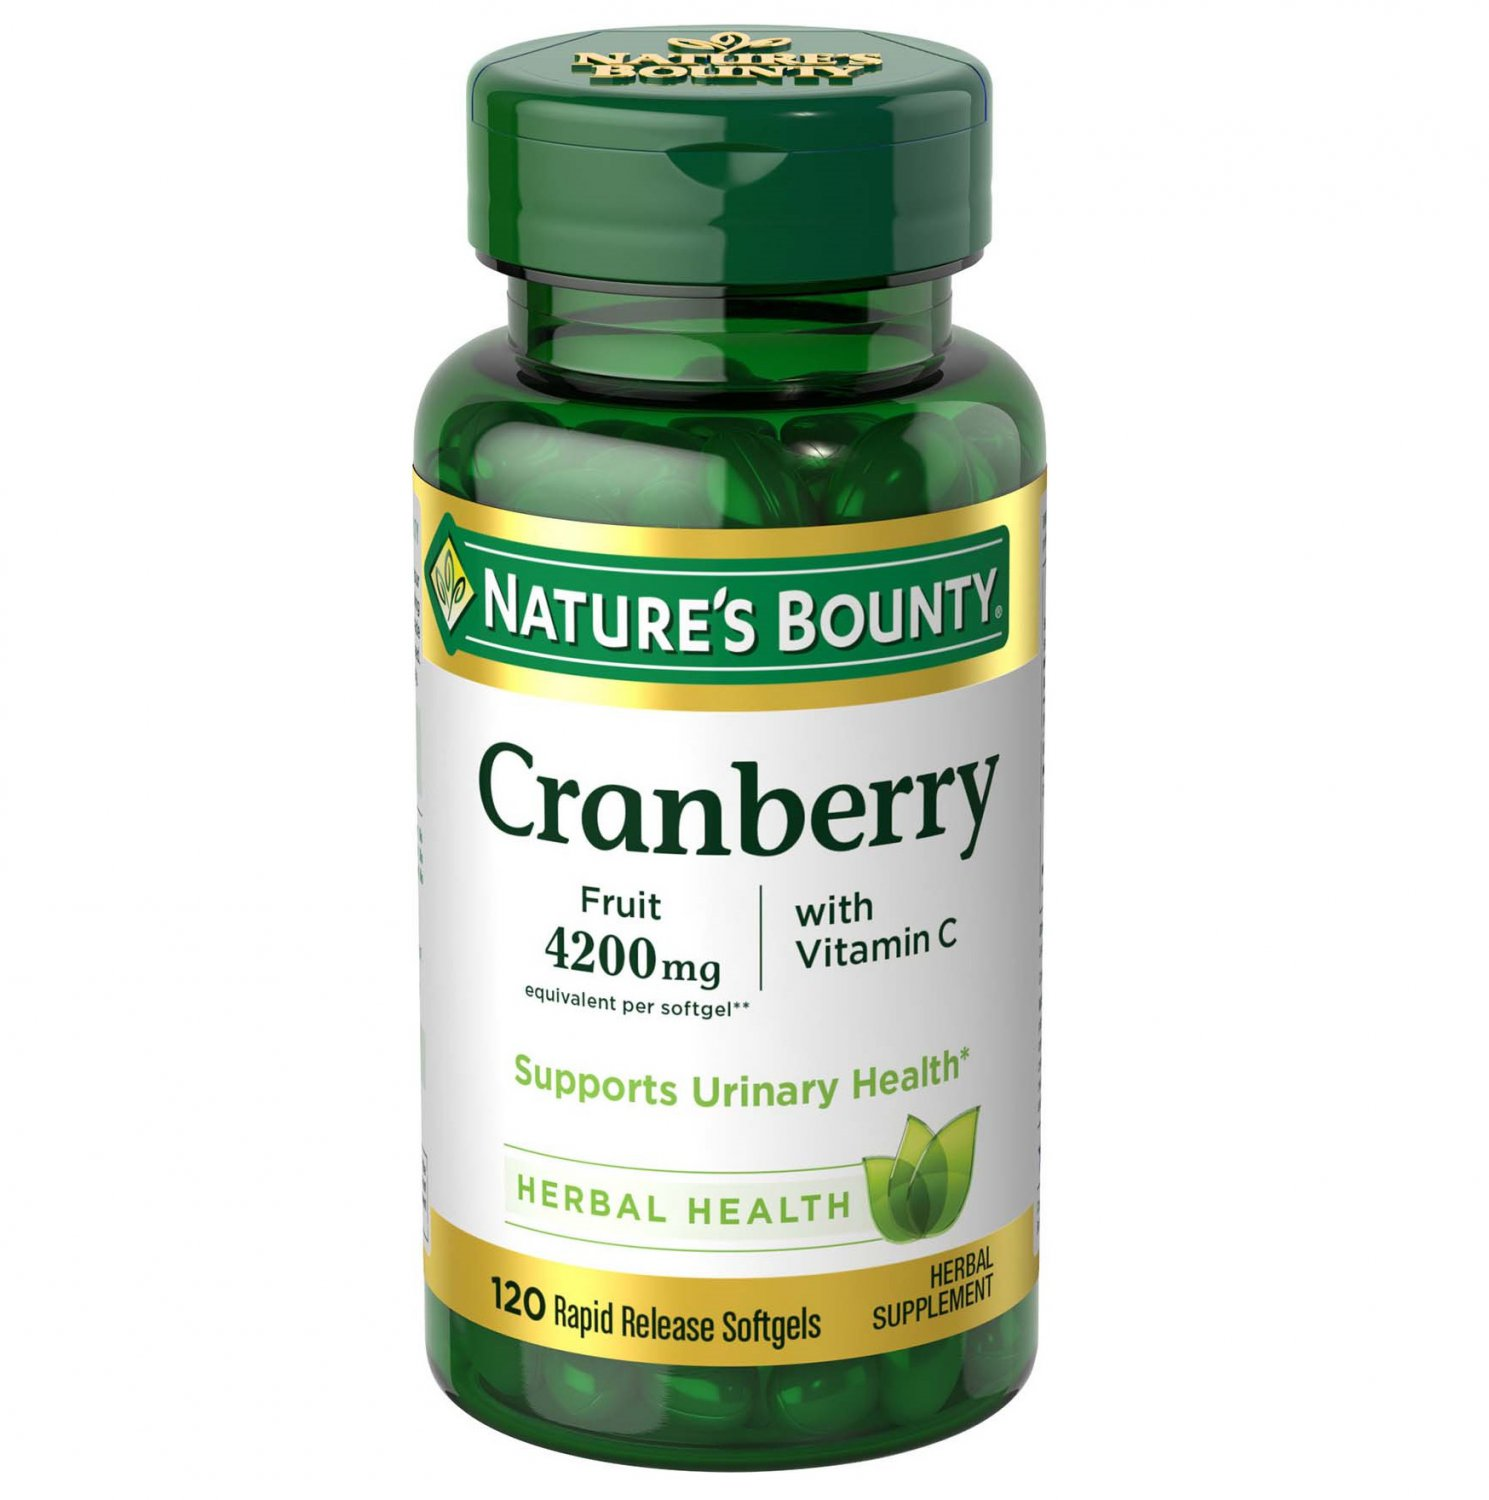 Nature's Bounty Cranberry Softgels, 4200 Mg, 120 Count